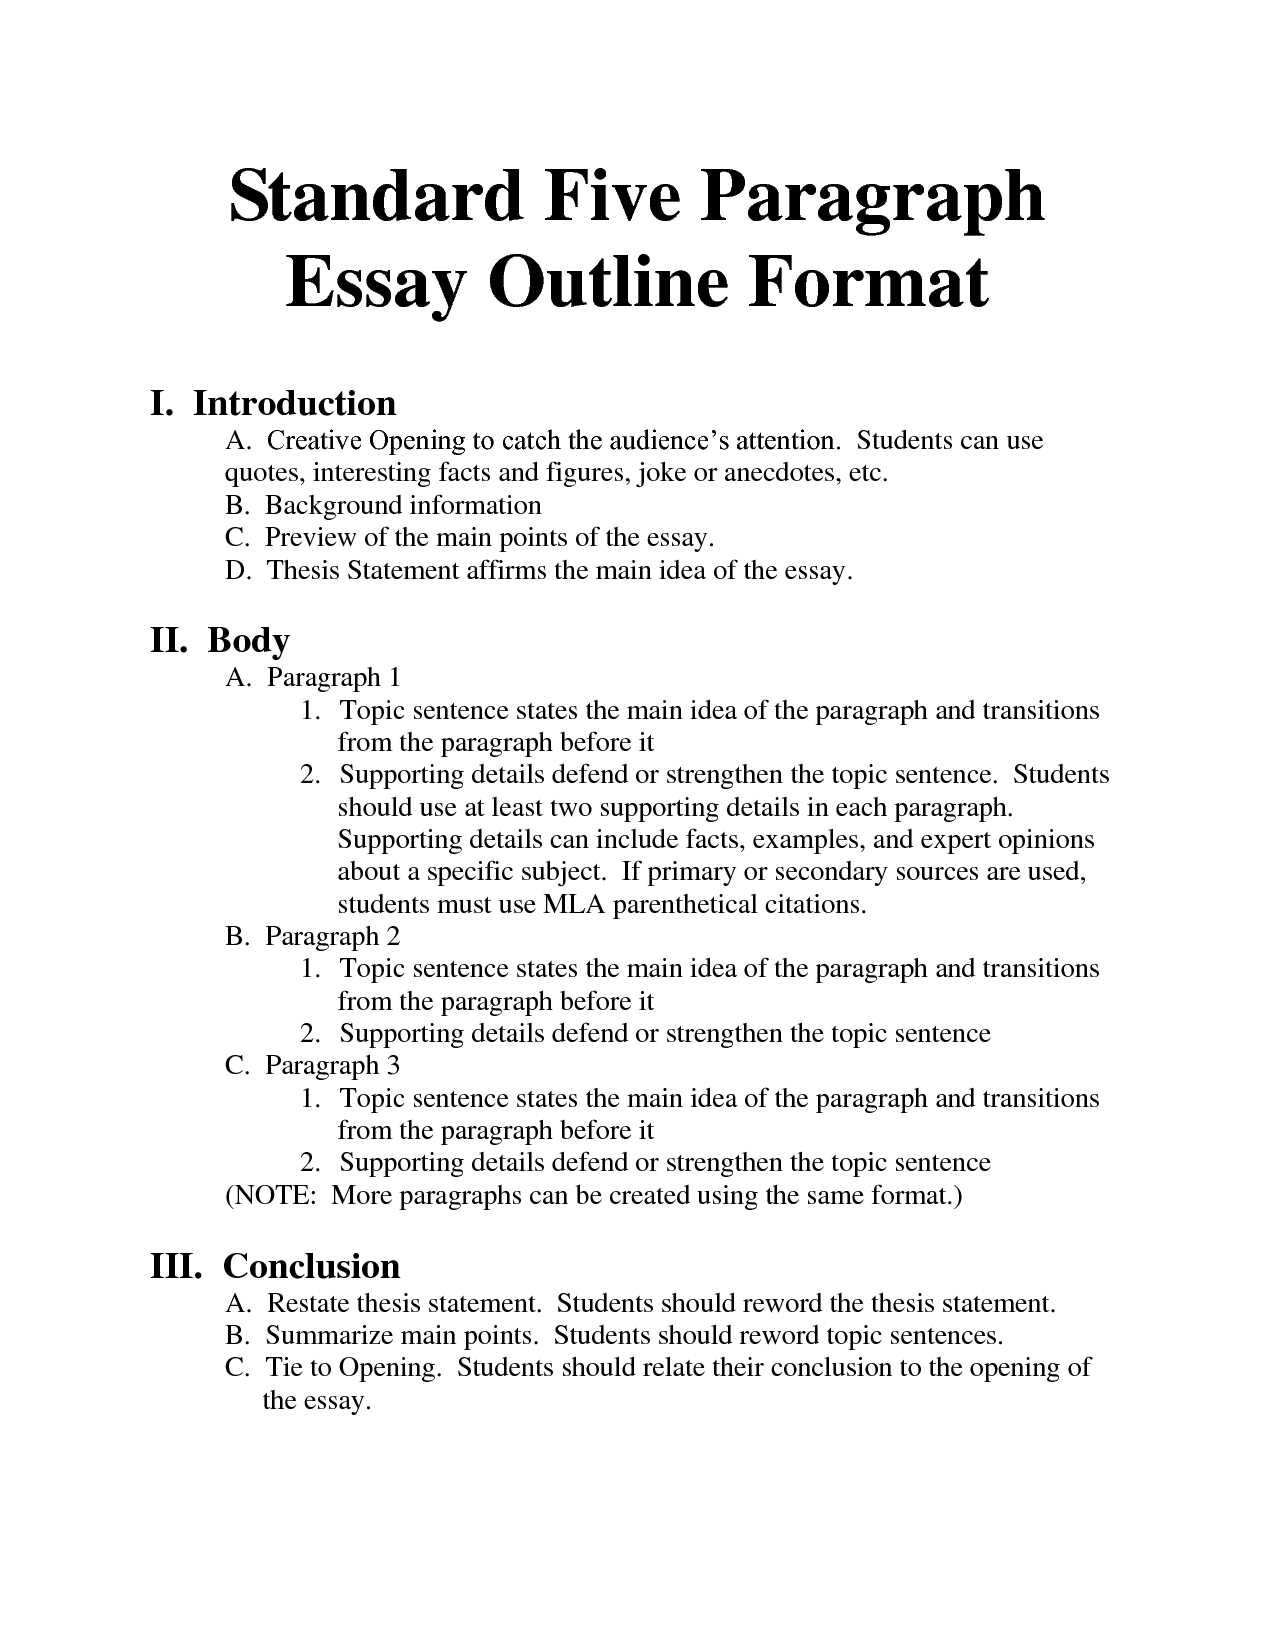 Bowling for Columbine Worksheet Answers Along with Type A Essay Standard Essay format Bing Images Essays Homeschool